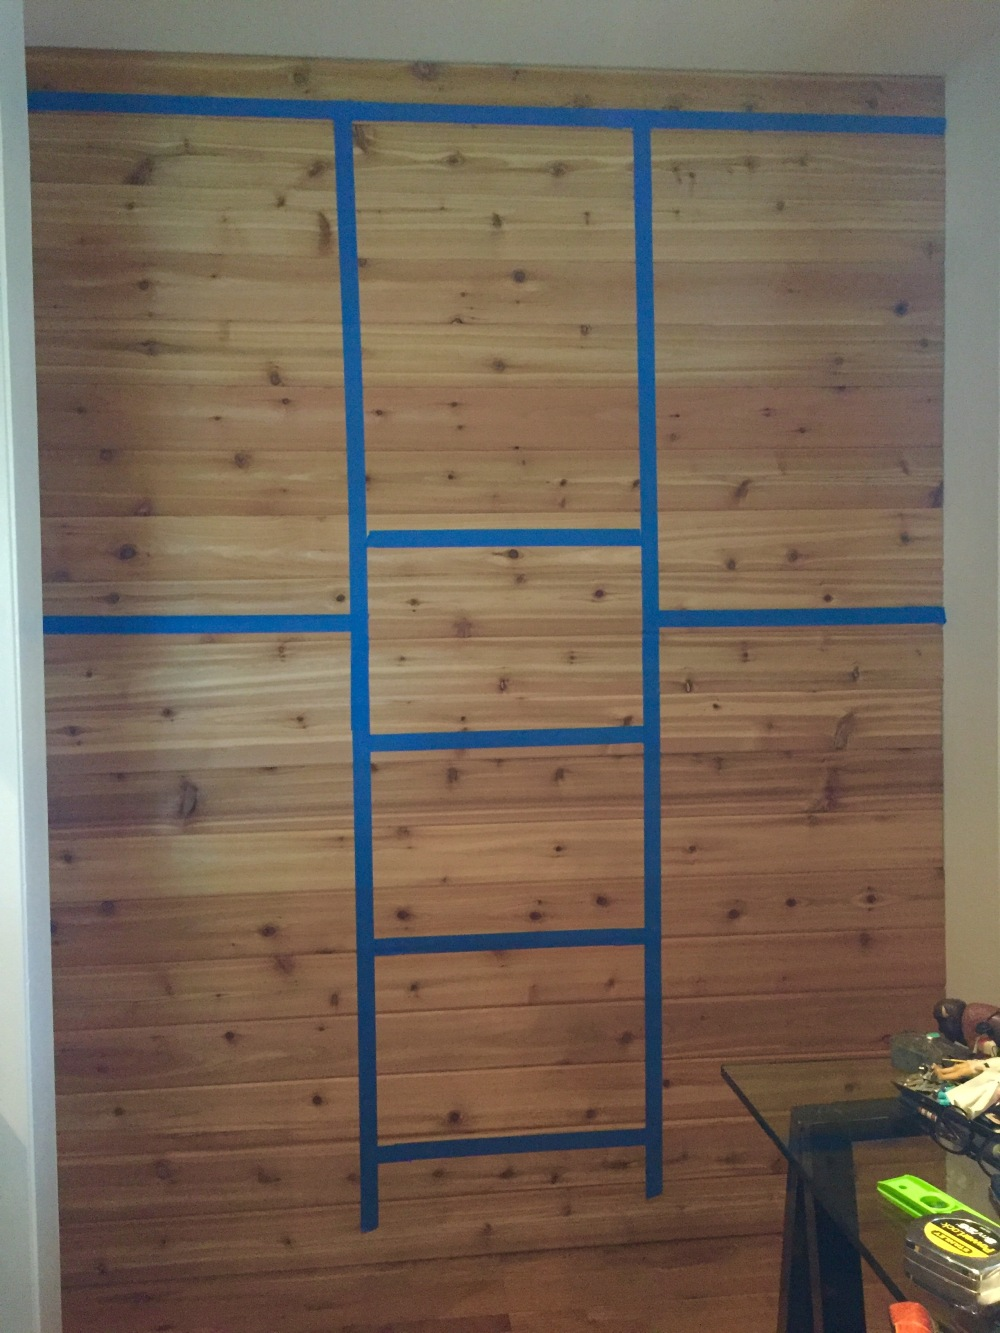 Cedar Wall with Masking Tape LAyout